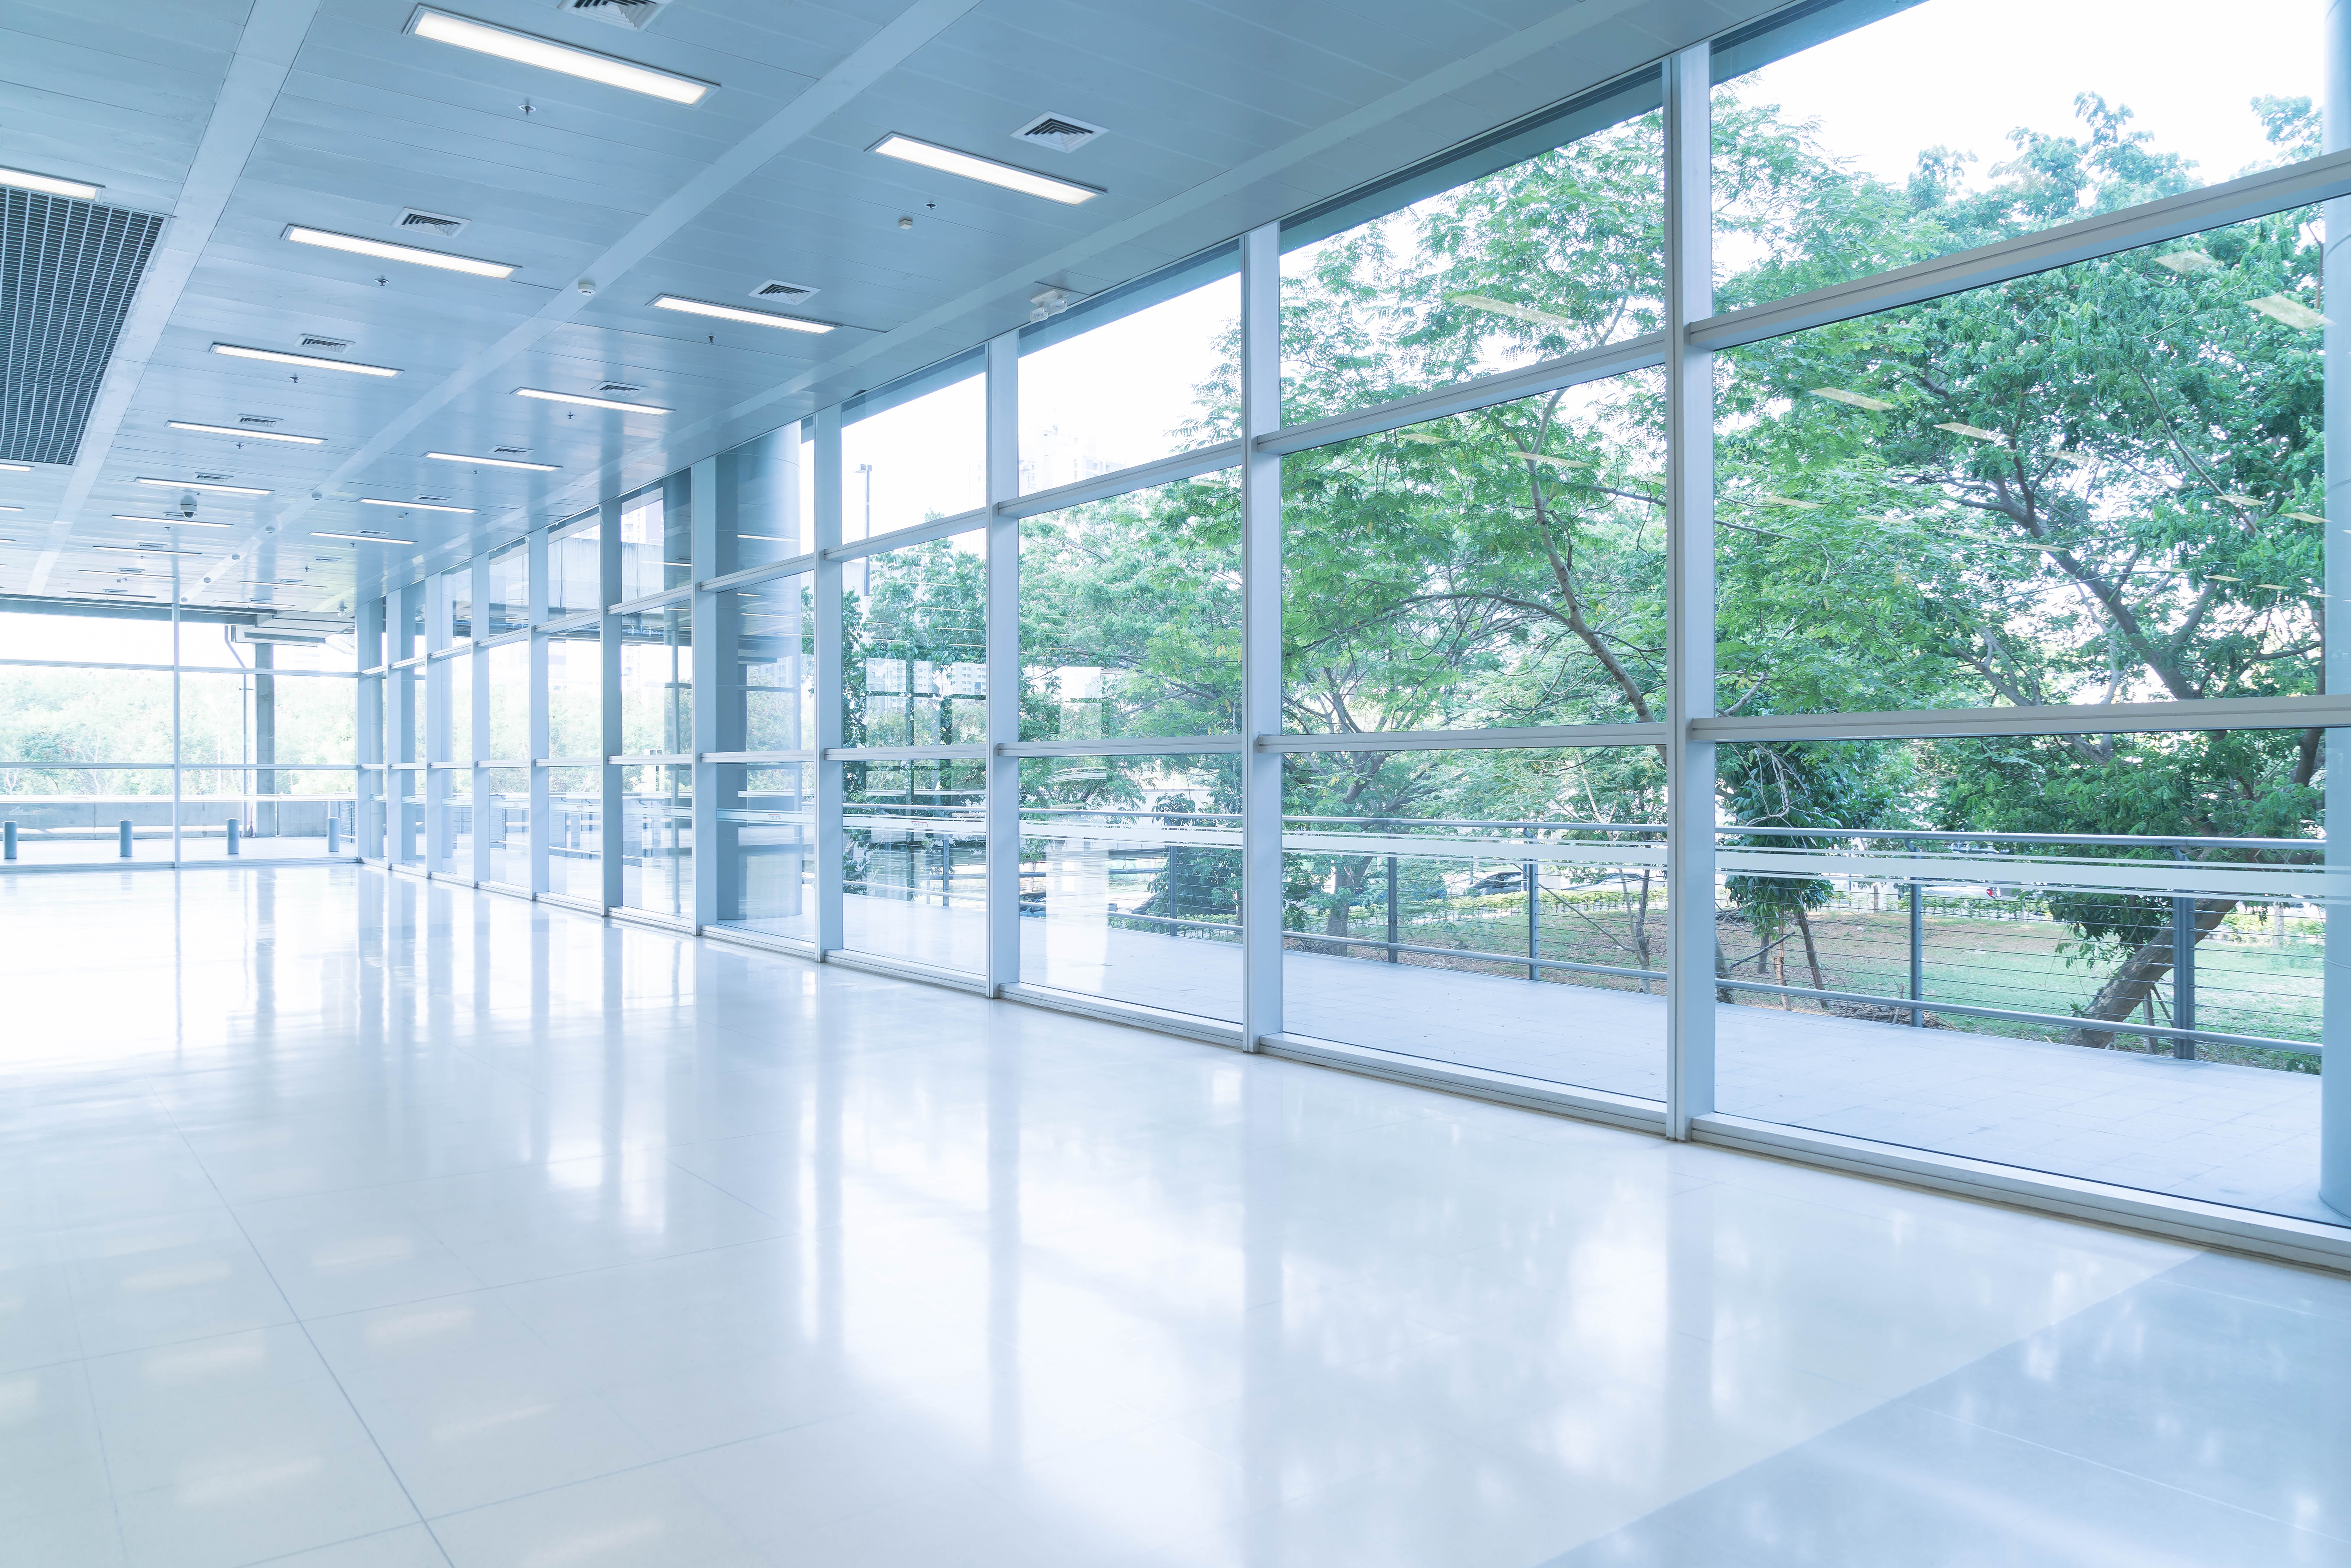 blurred-abstract-background-interior-view-looking-out-toward-empty-office-lobby-entrance-doors-glass-curtain-wall-with-frame.jpg